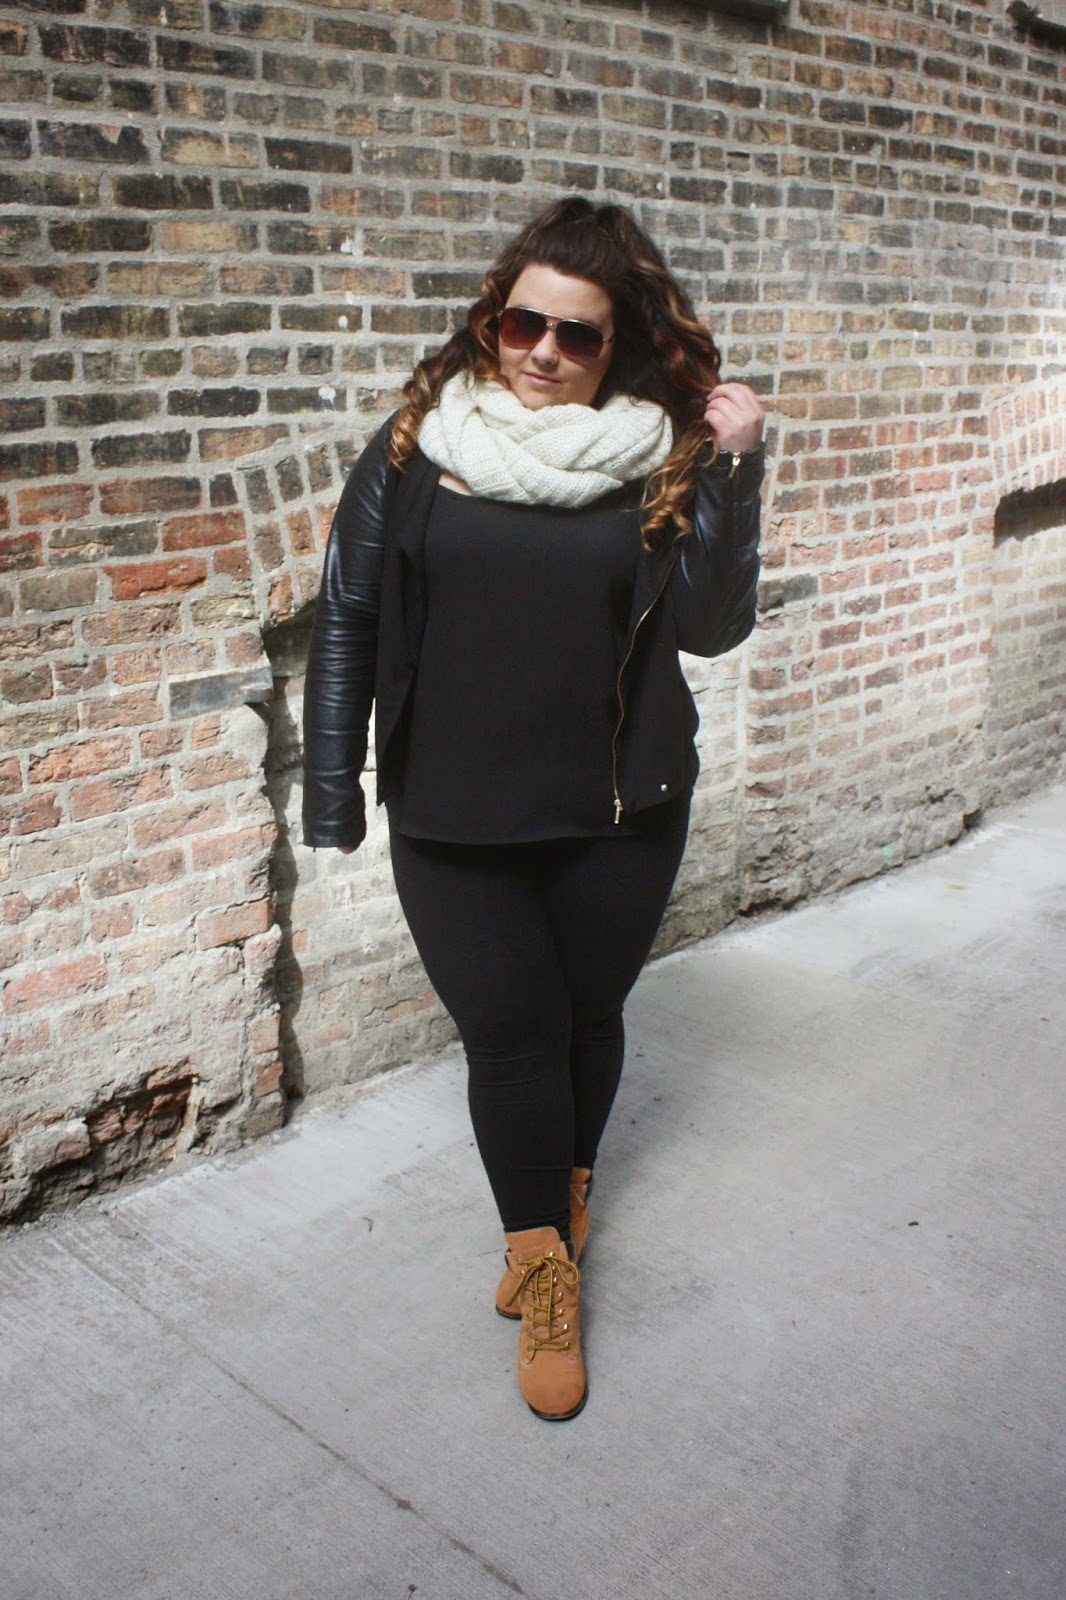 black spring wardrobe, natalie craig, natalie in the city, chicago, plus size fashion, fatshion, fashion blogger, leather jacket, contrast sleeves, half up hair, ariana grande hair, timberlands, timberland heels, all black everything, infinity scarf, aviators, curvy women, bbw, outfits with leggings, curly ombre